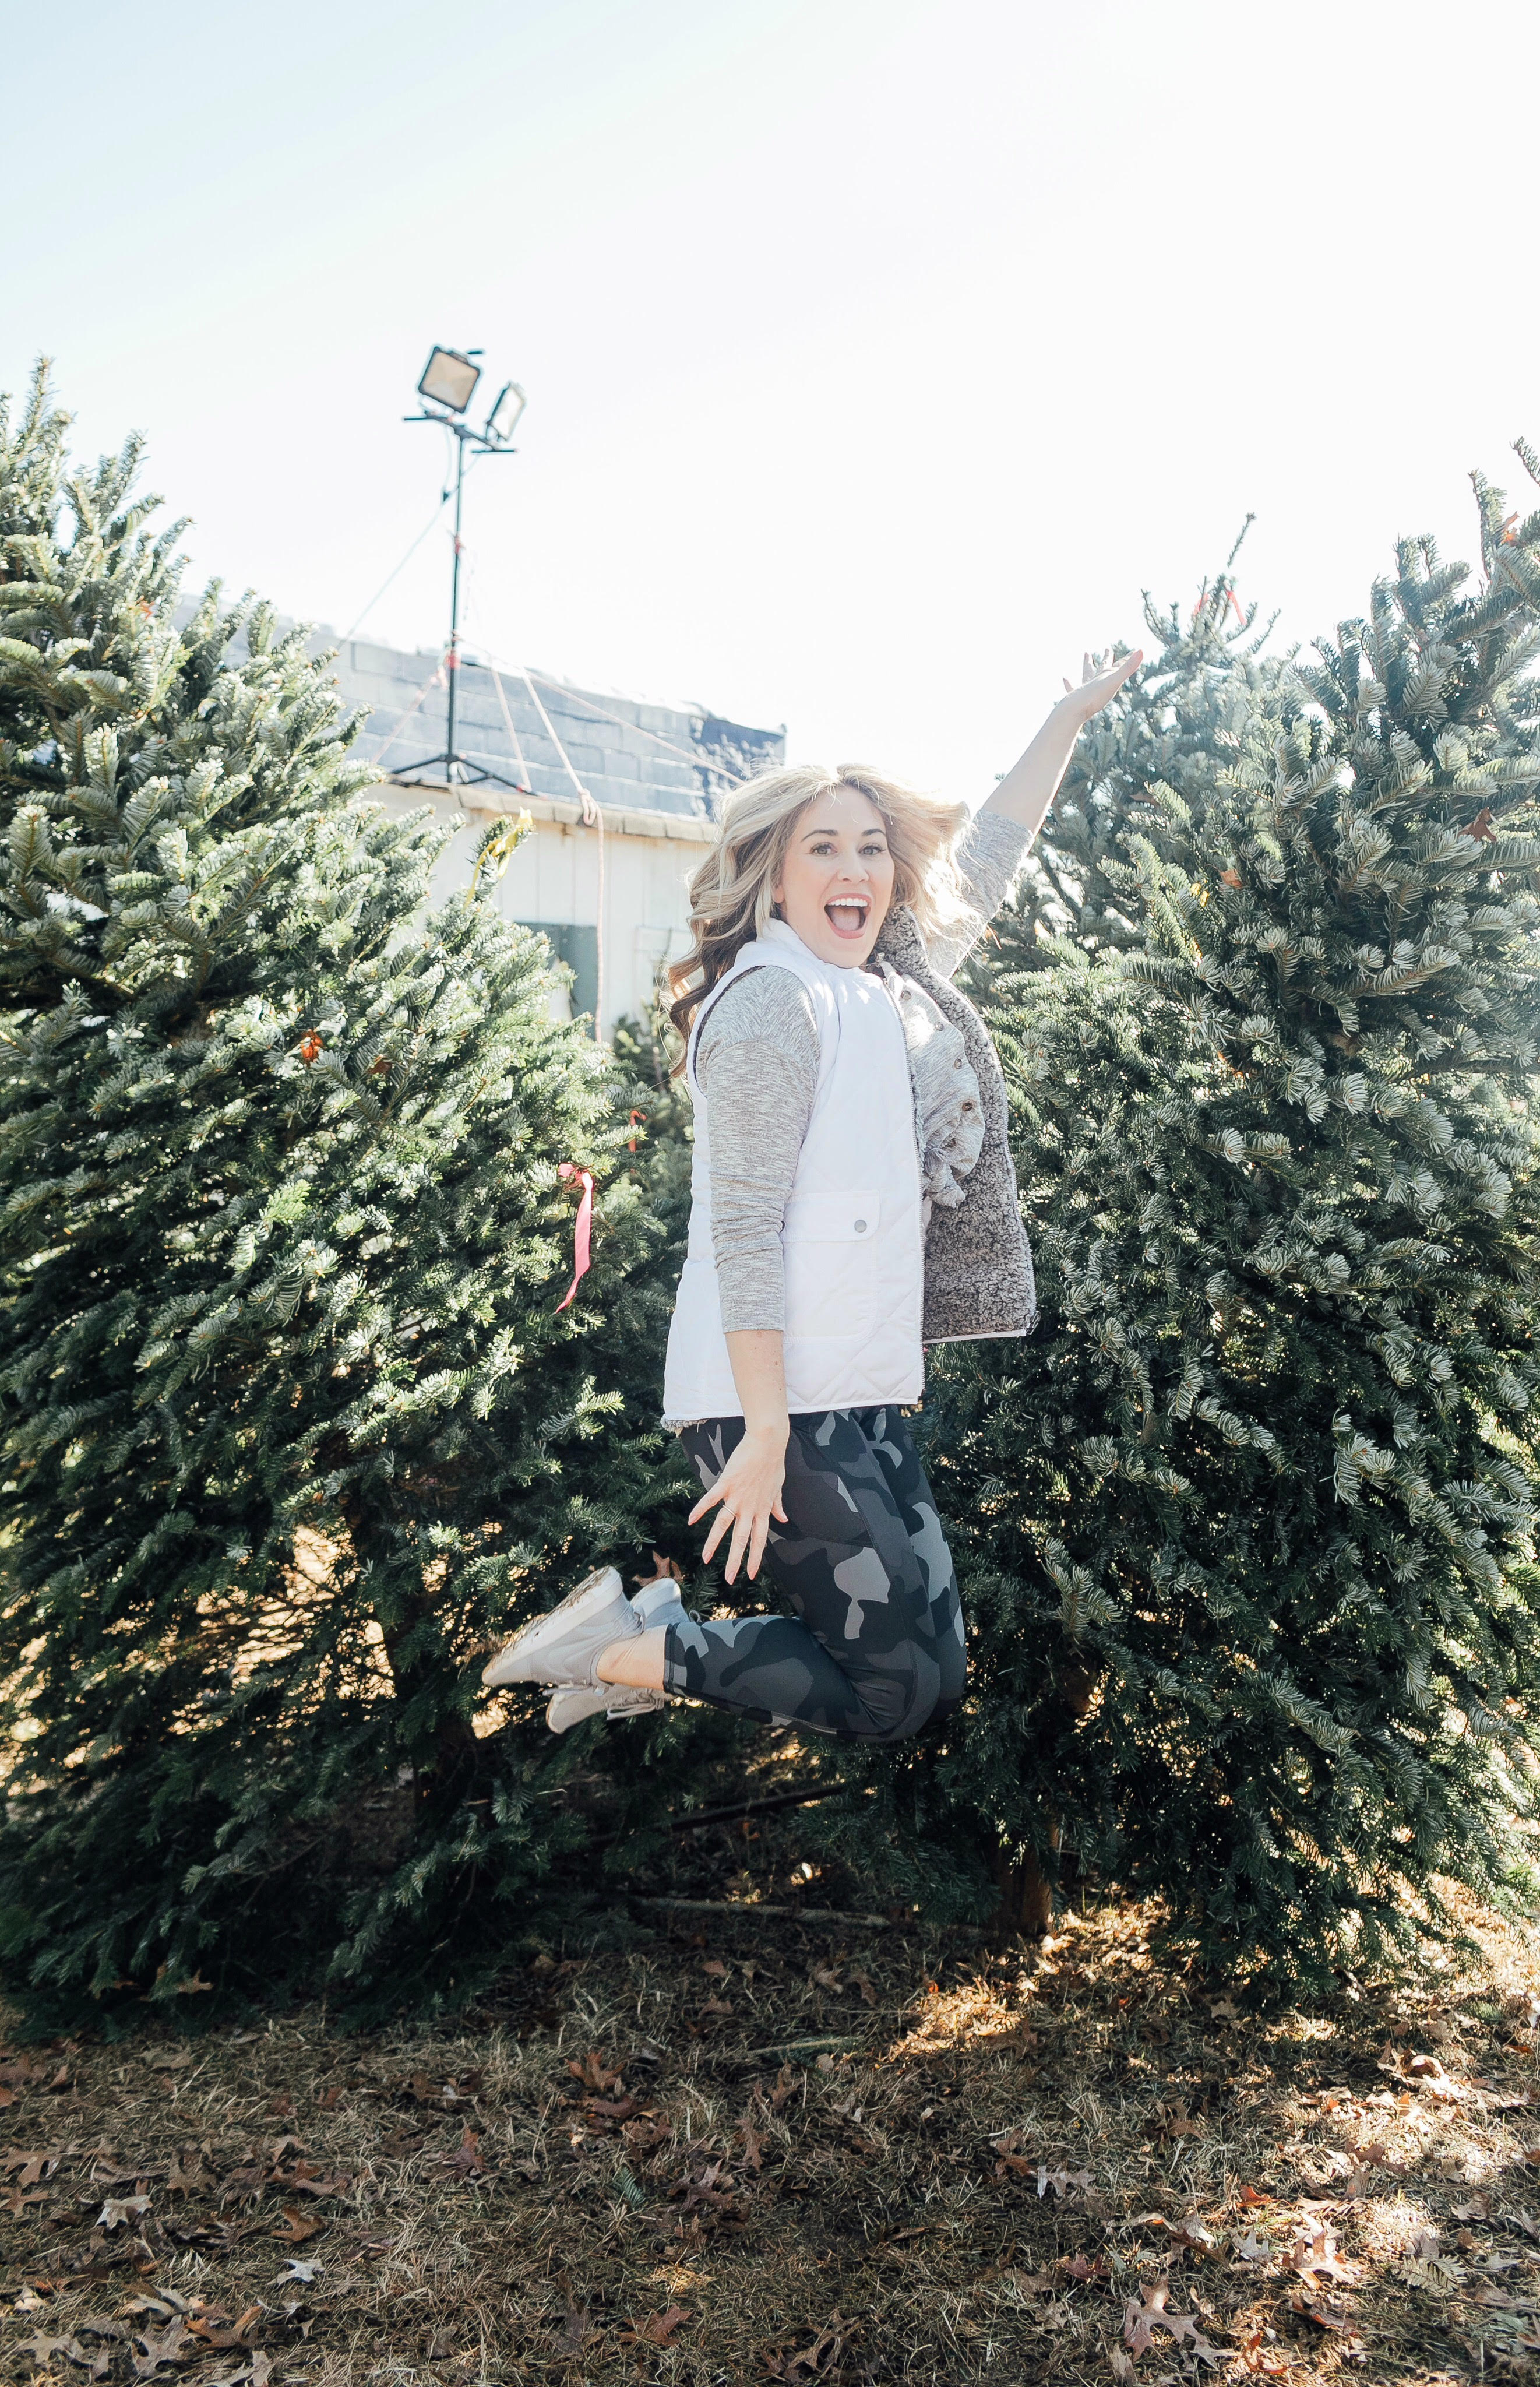 Full Abs Workout featured by top US fitness blog, Walking in Memphis in High Heels, as part of their Holiday Honey Hustle Challenge: image of a woman working out at a Christmas tree farm